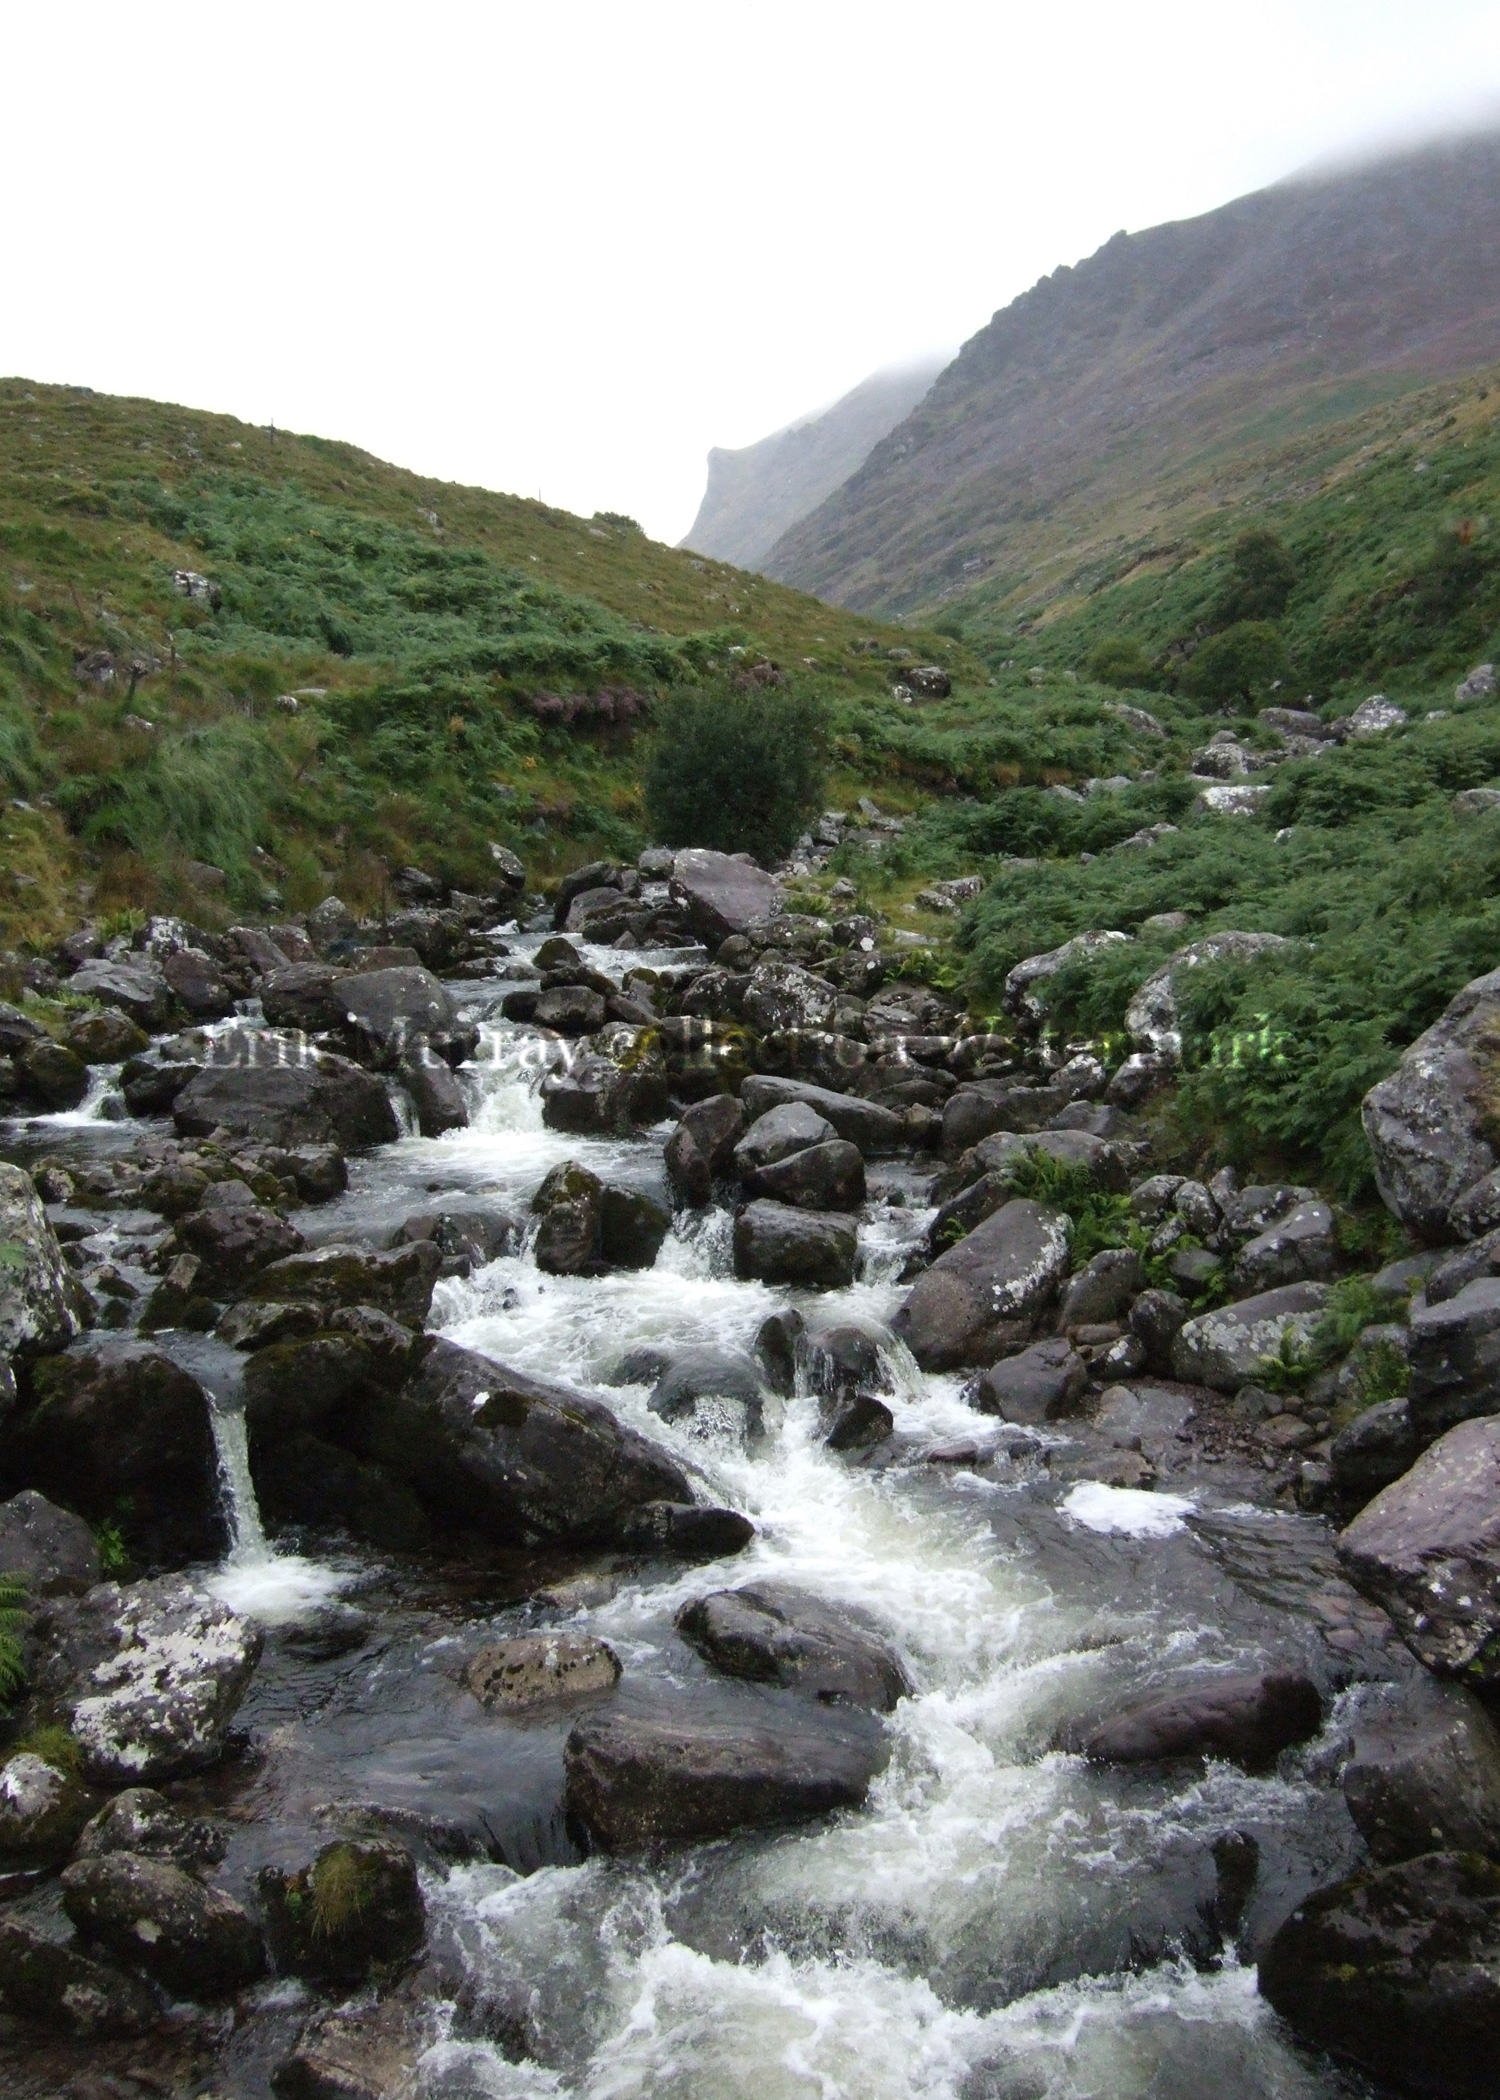 Carrauntoohil Stream 2014 no boarder & signature